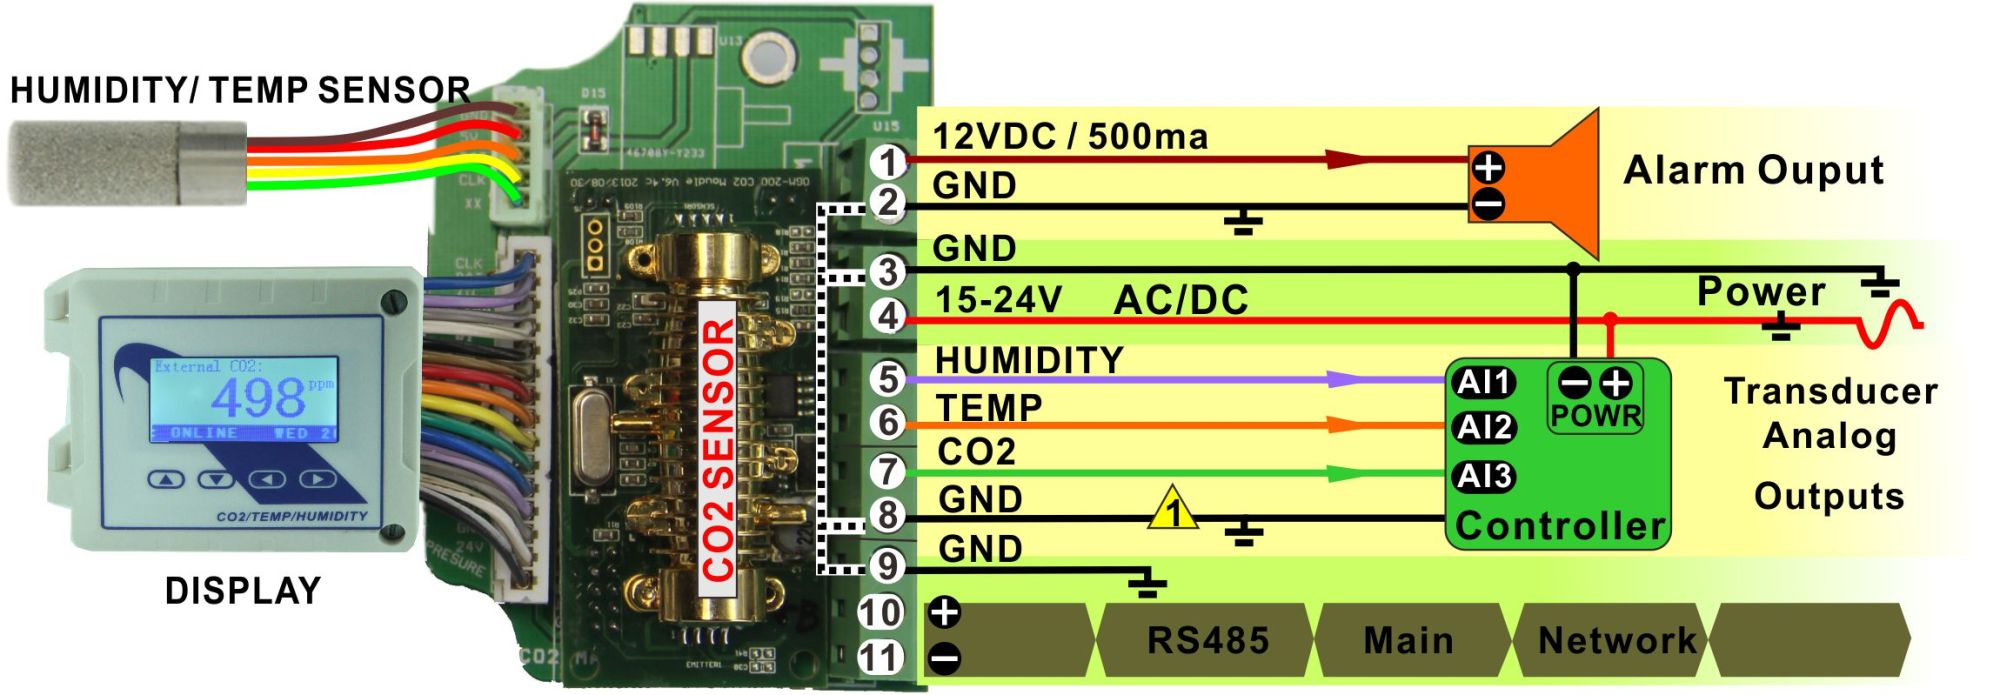 hight resolution of co2 sensor wiring diagram co2 d co2 w